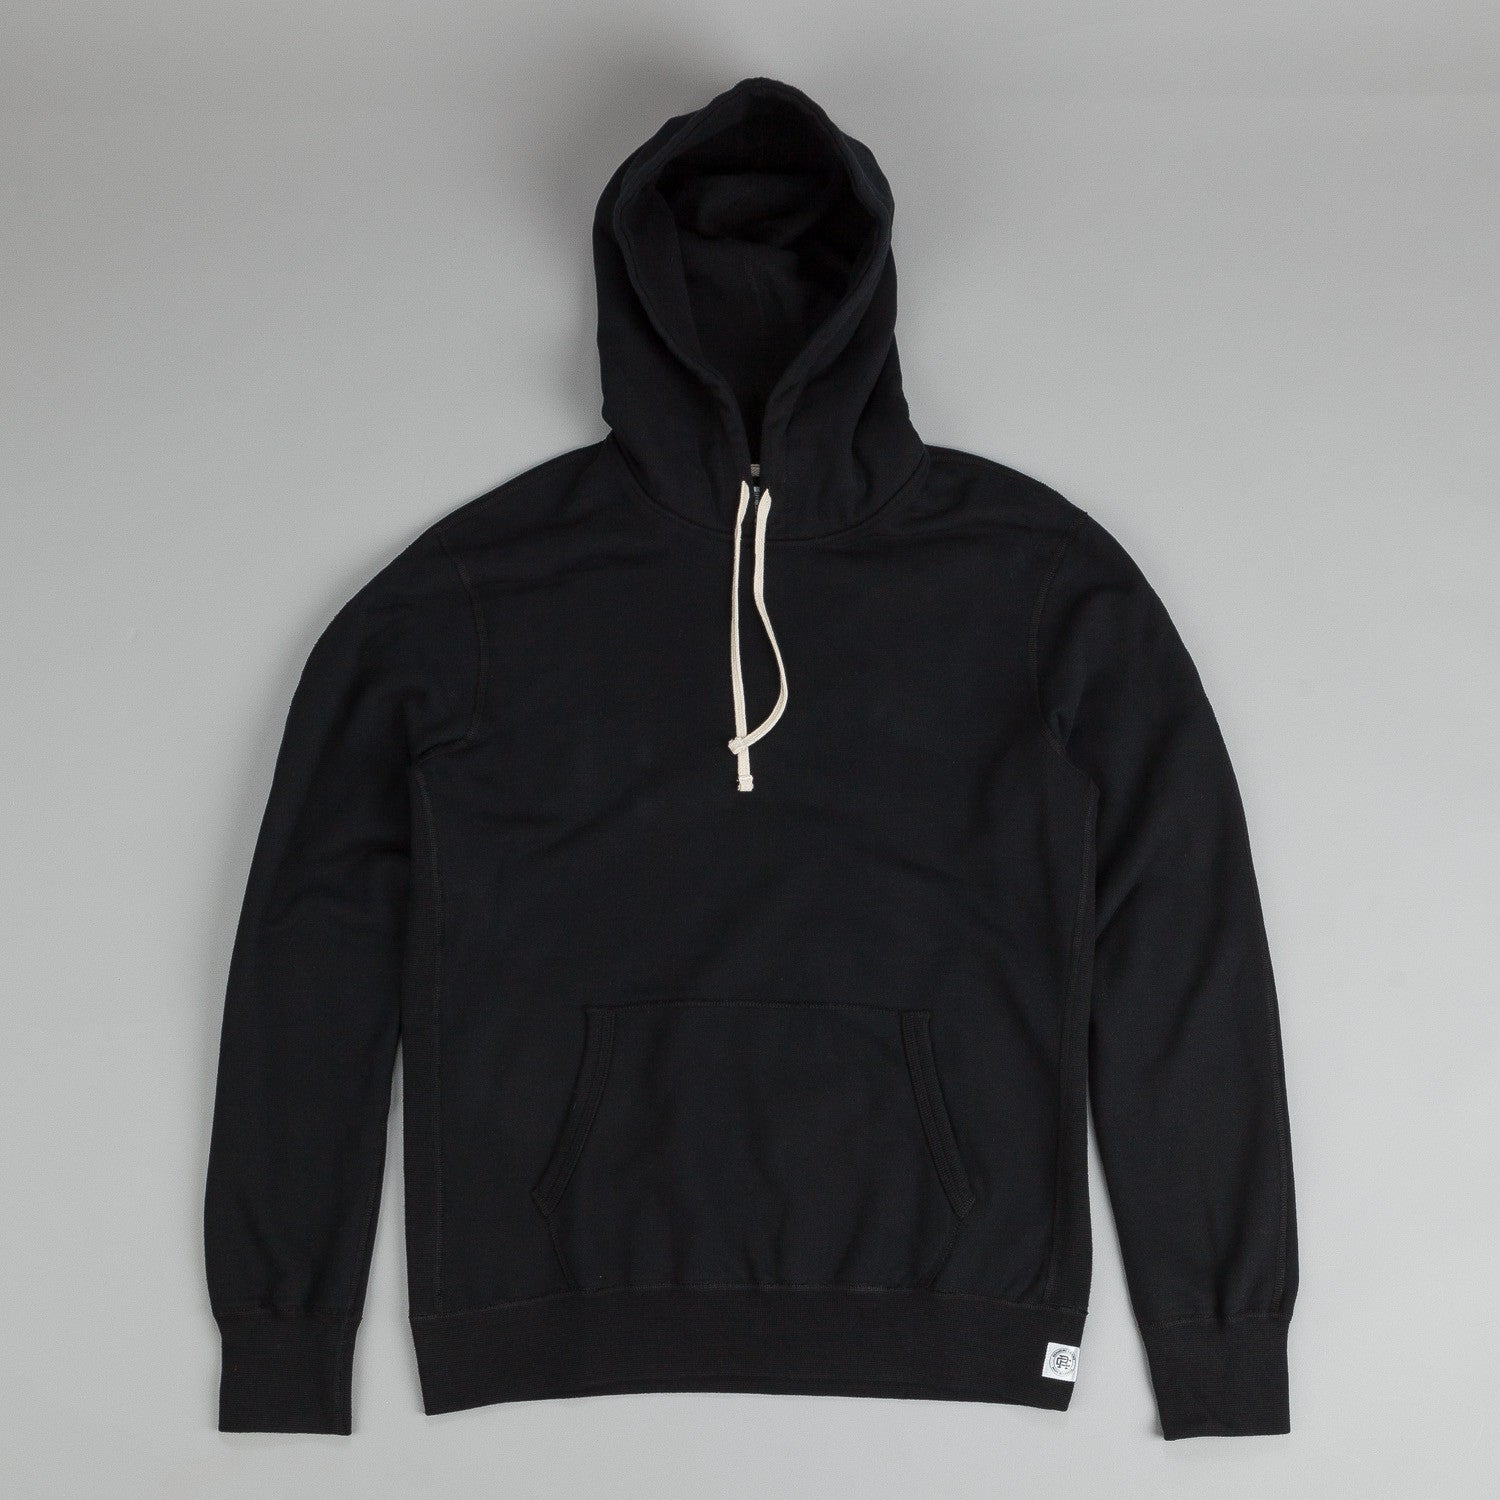 Reigning Champ Core Pullover Hooded Sweatshirt Black